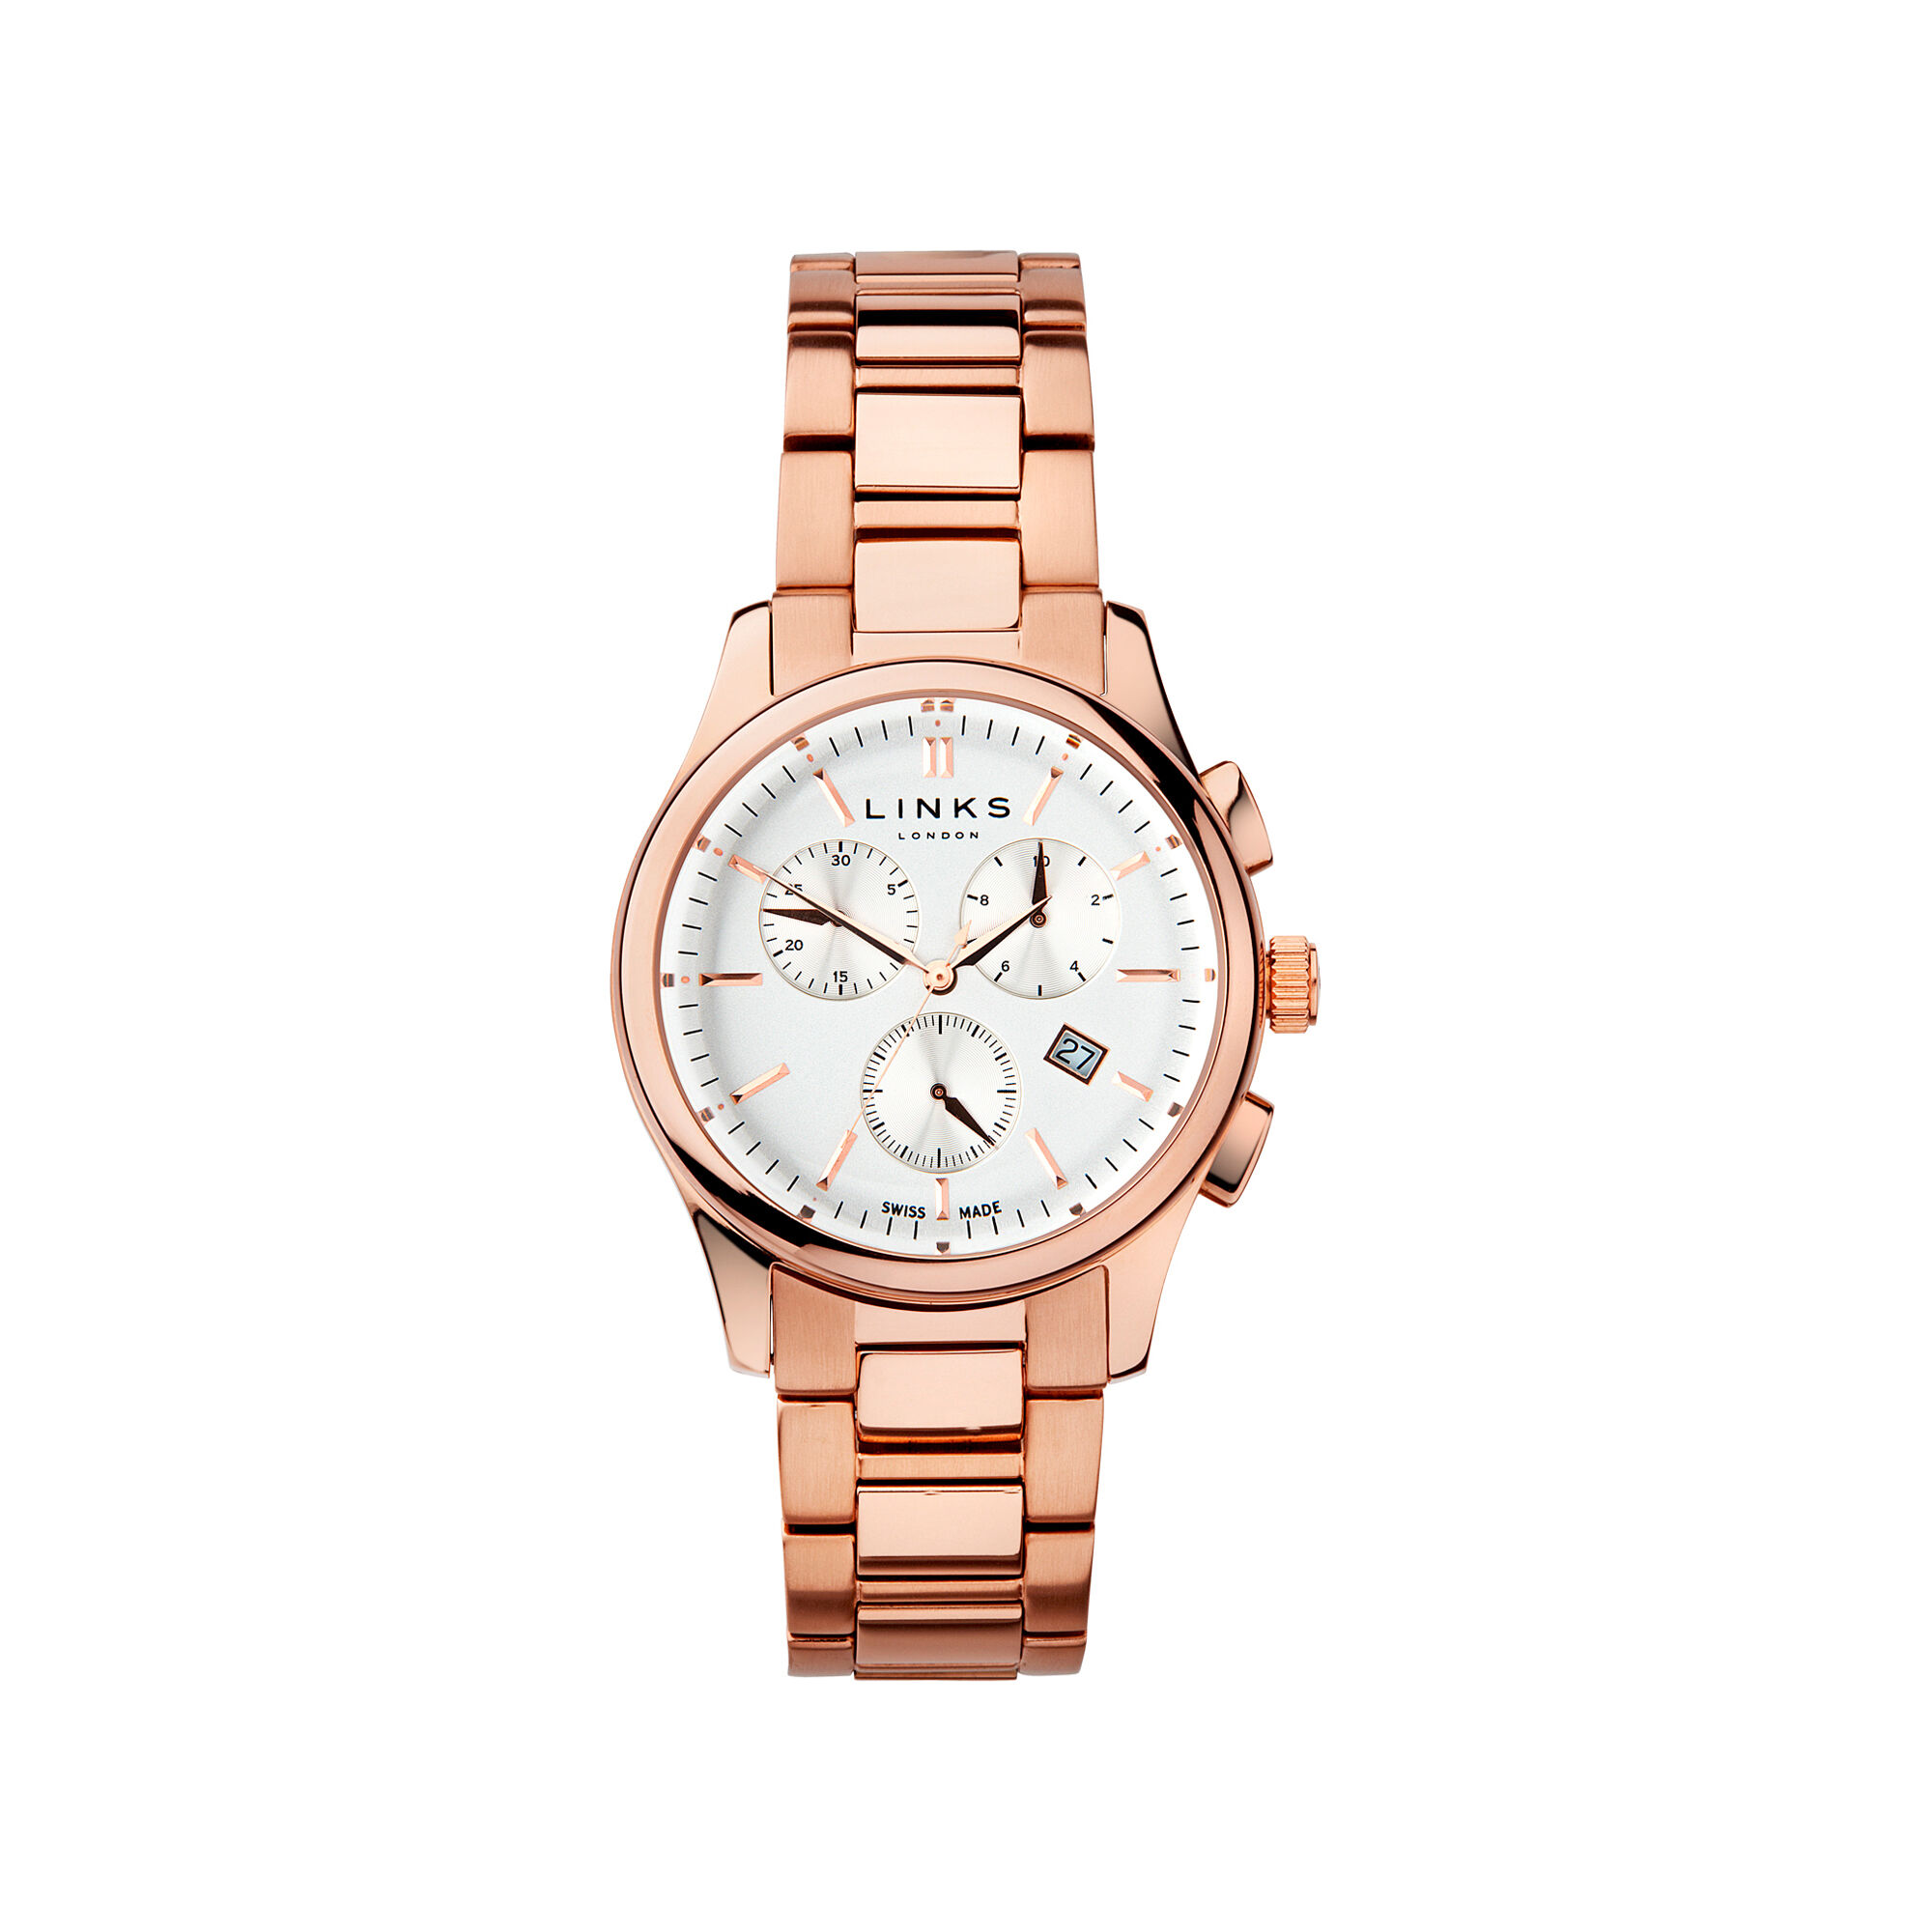 official watches women s rose rosegold gold obaku watch sky